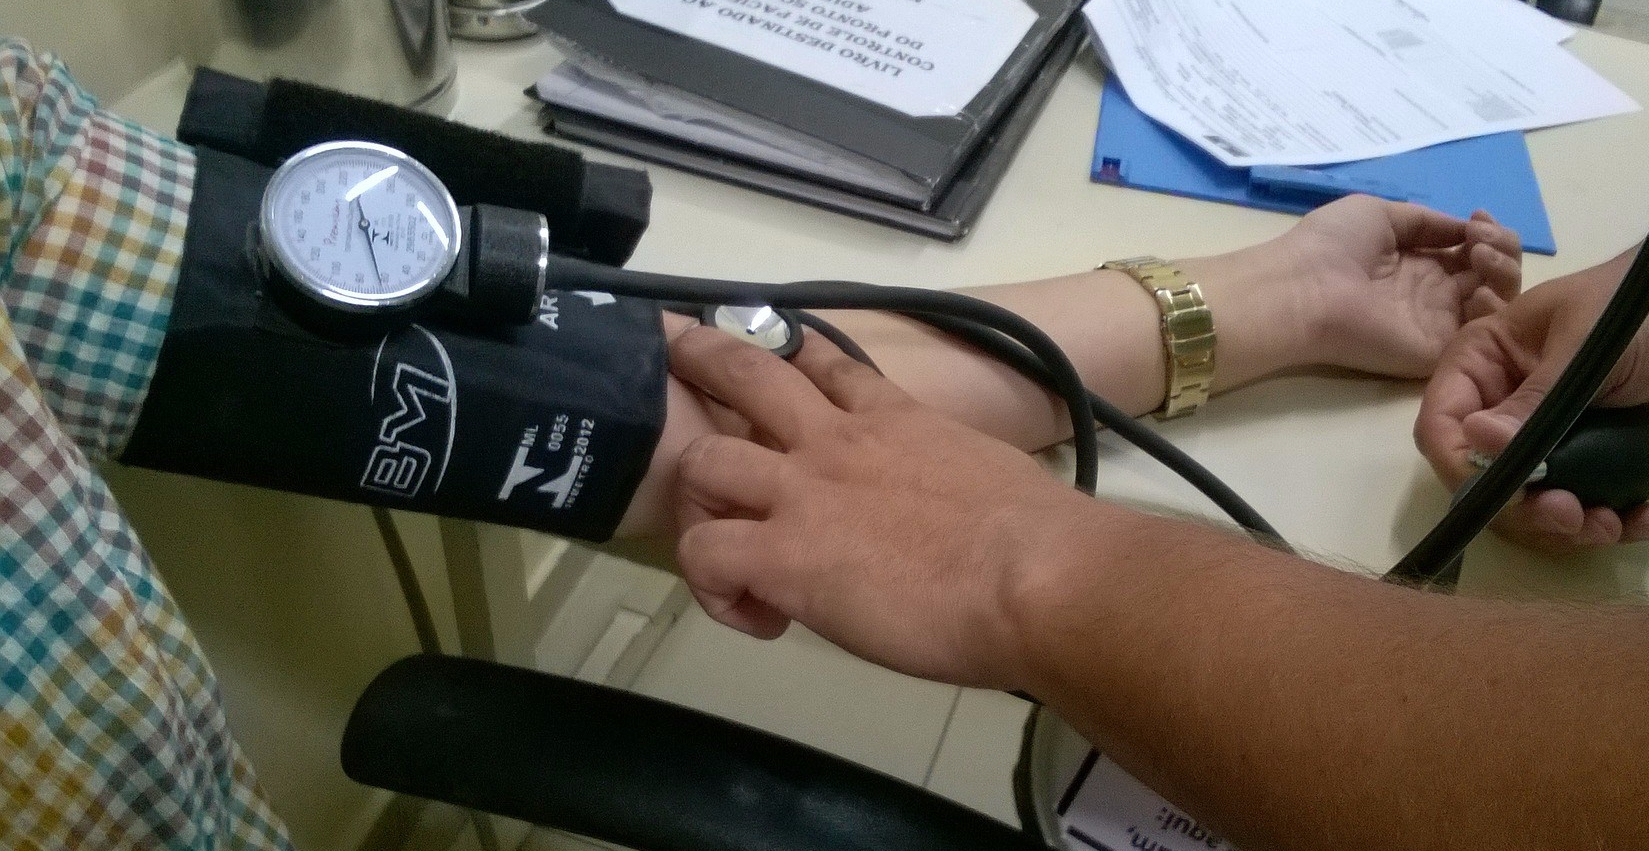 a person having blood pressure measured